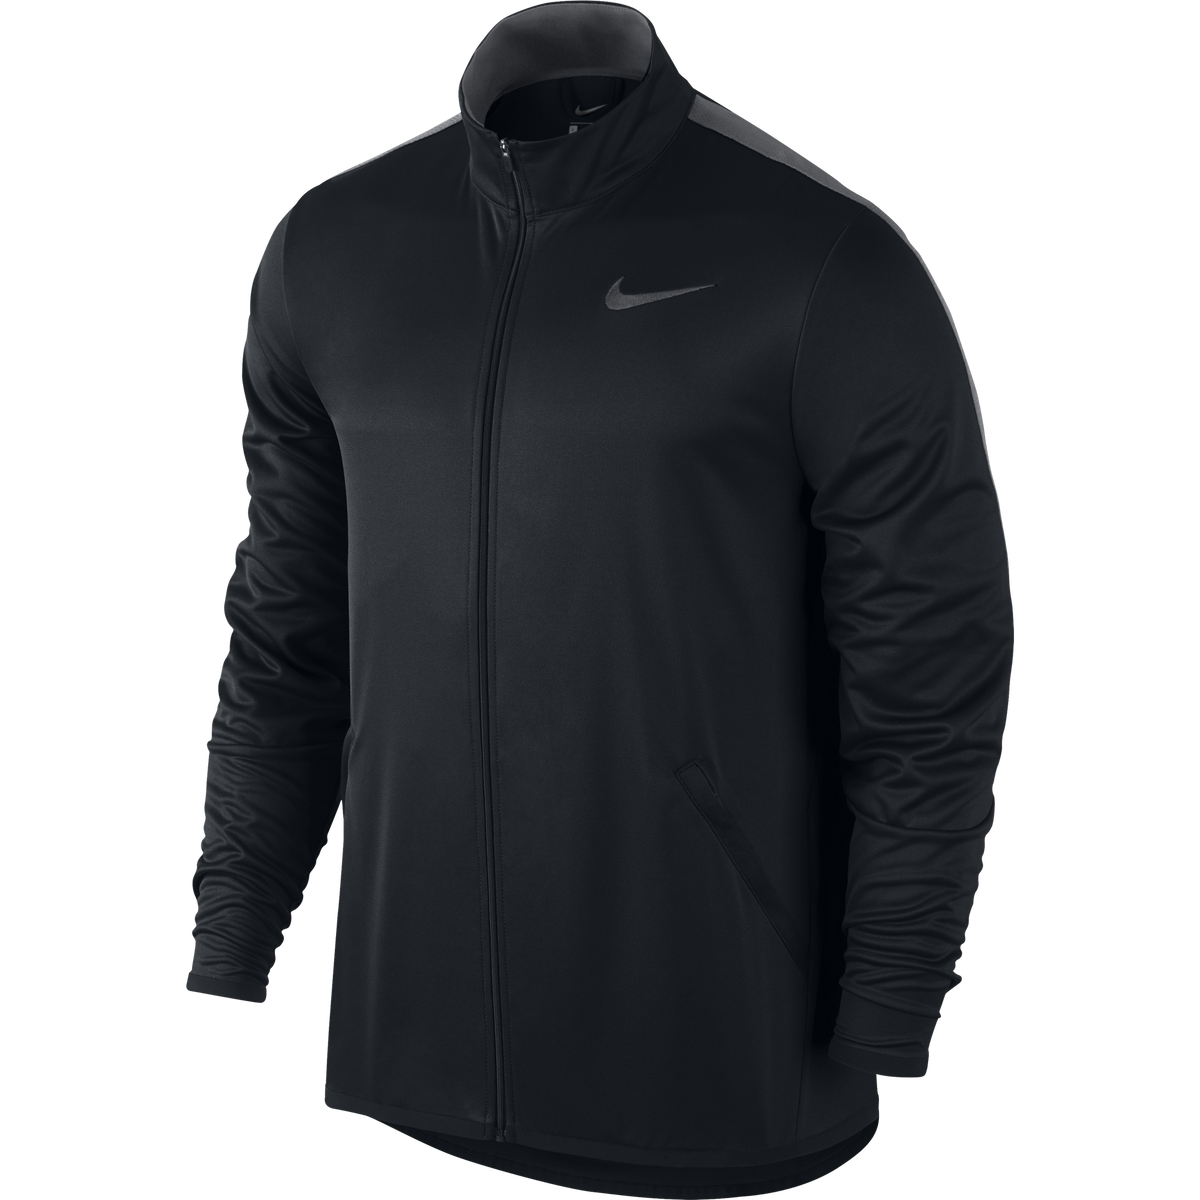 Nike Epic Knit Jacket 357daaa592a